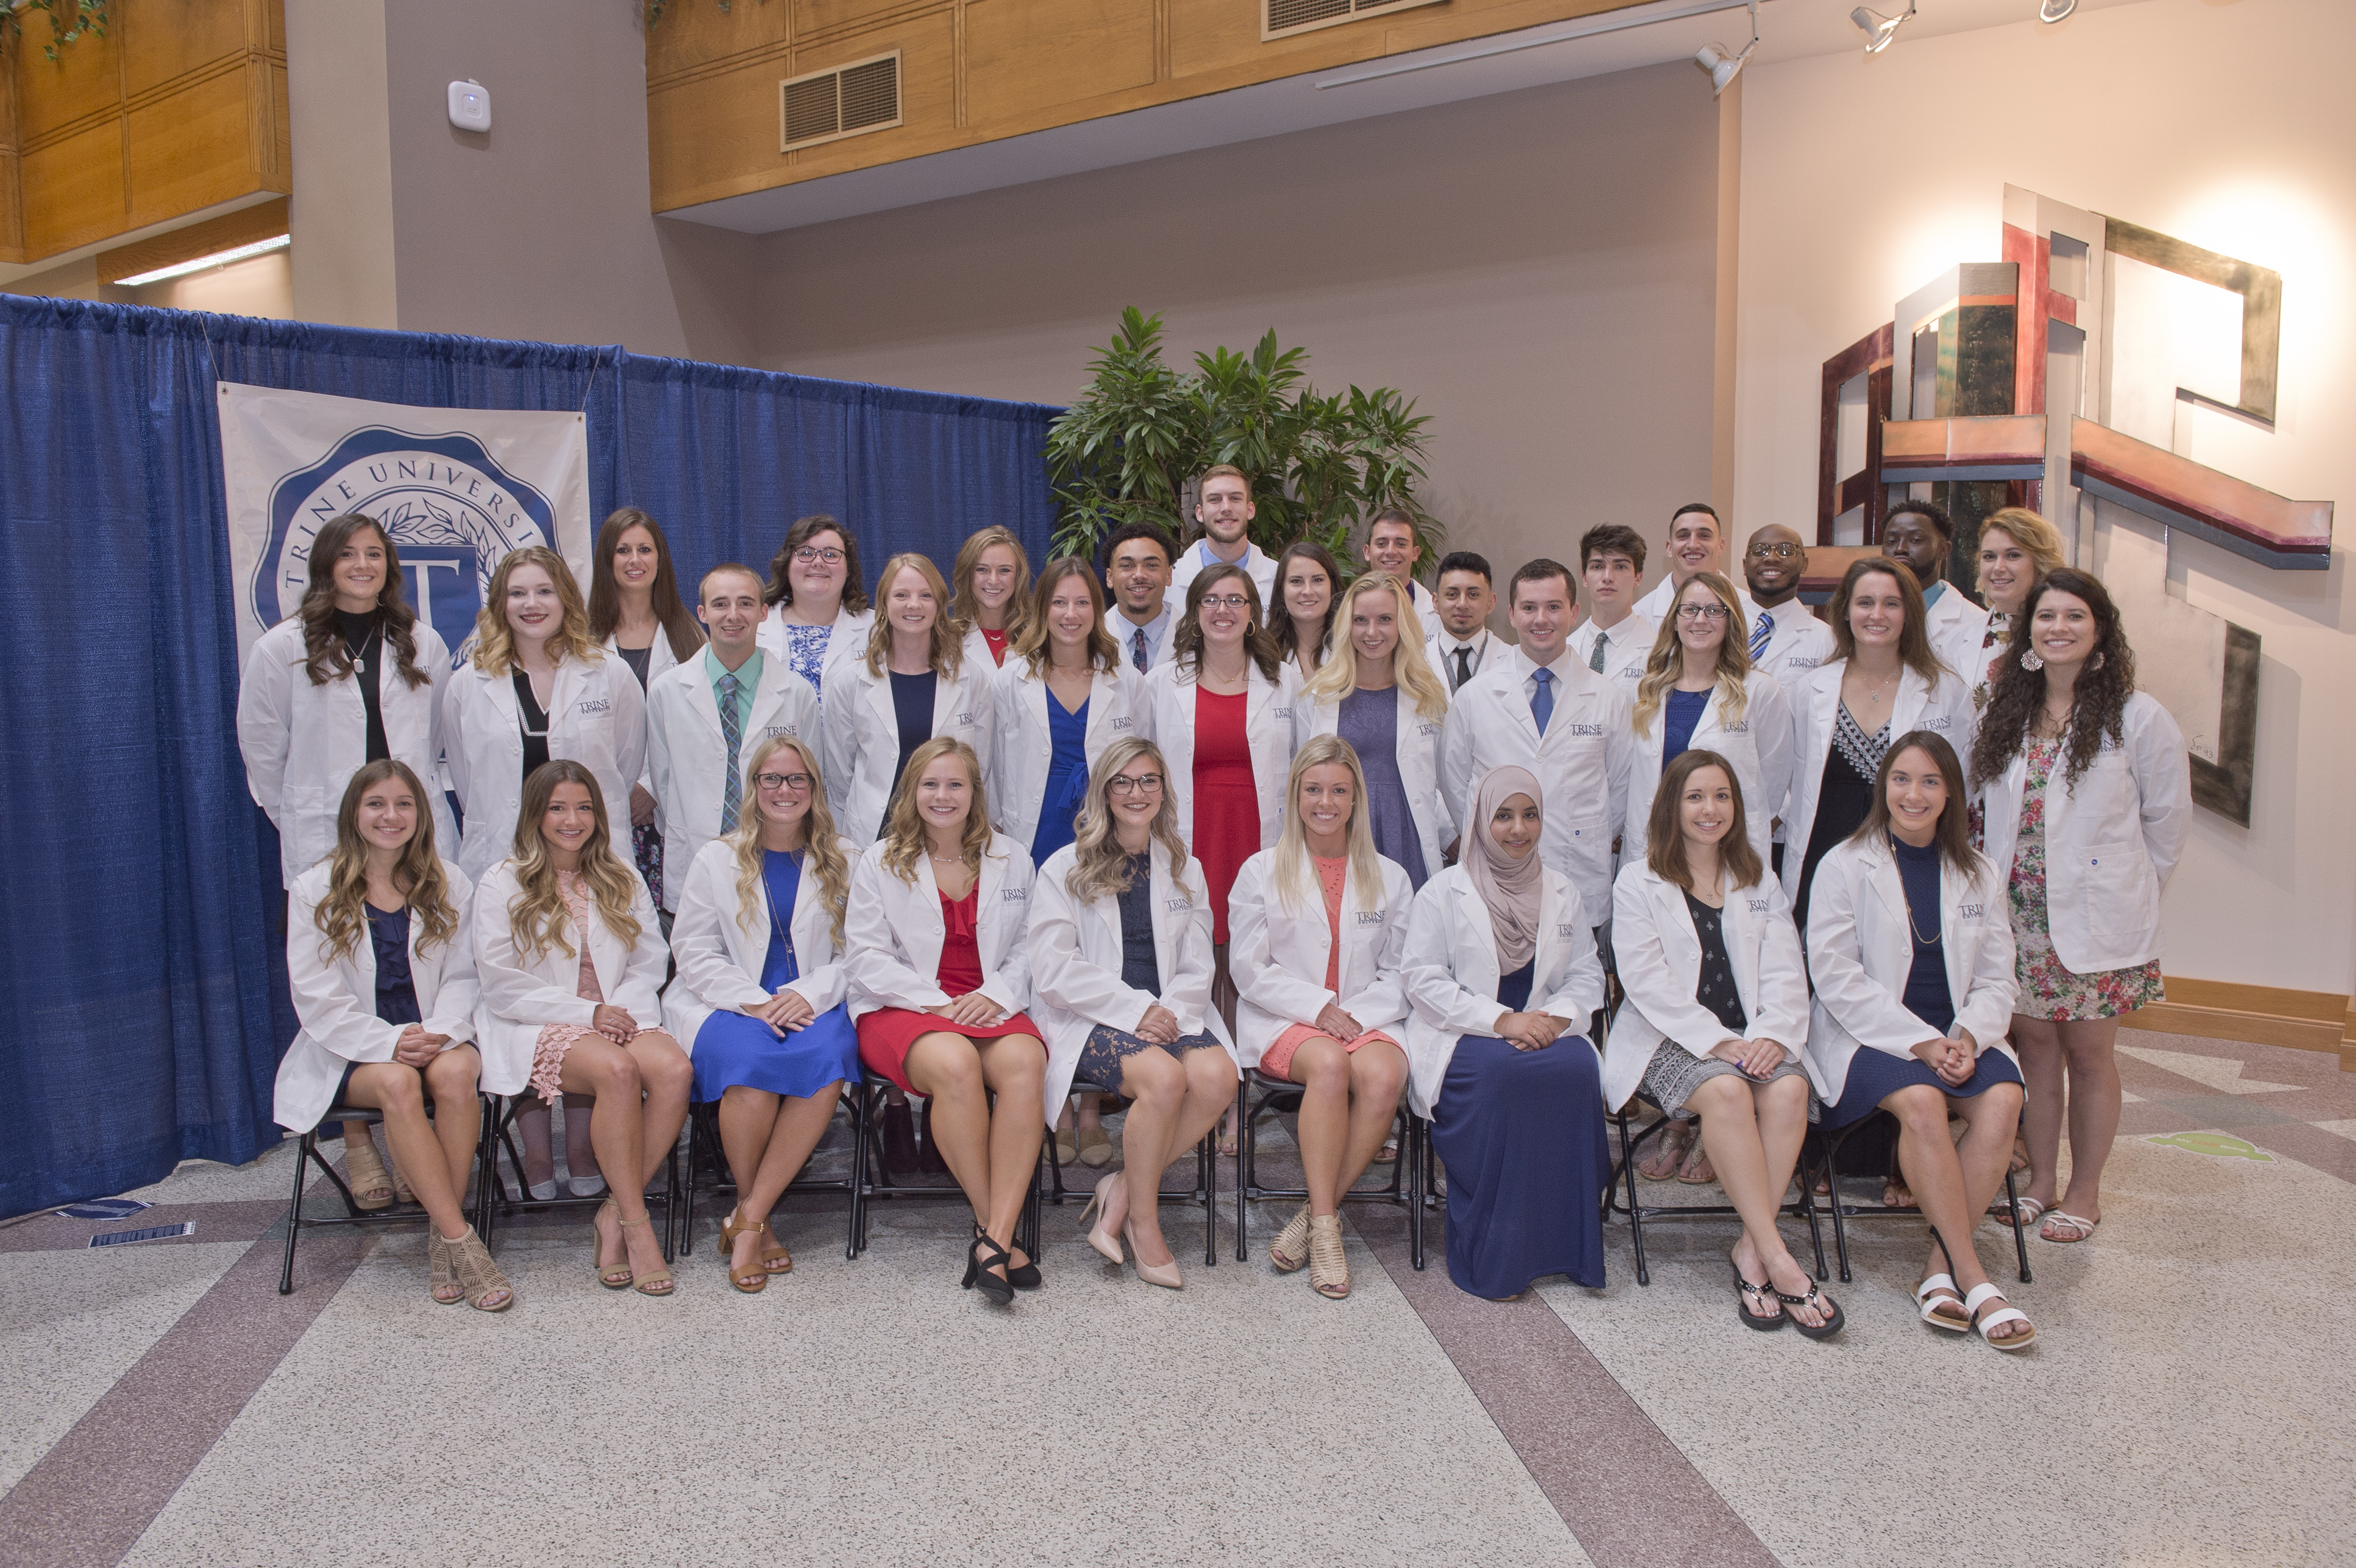 2019 whitecoat ceremony 1 42243